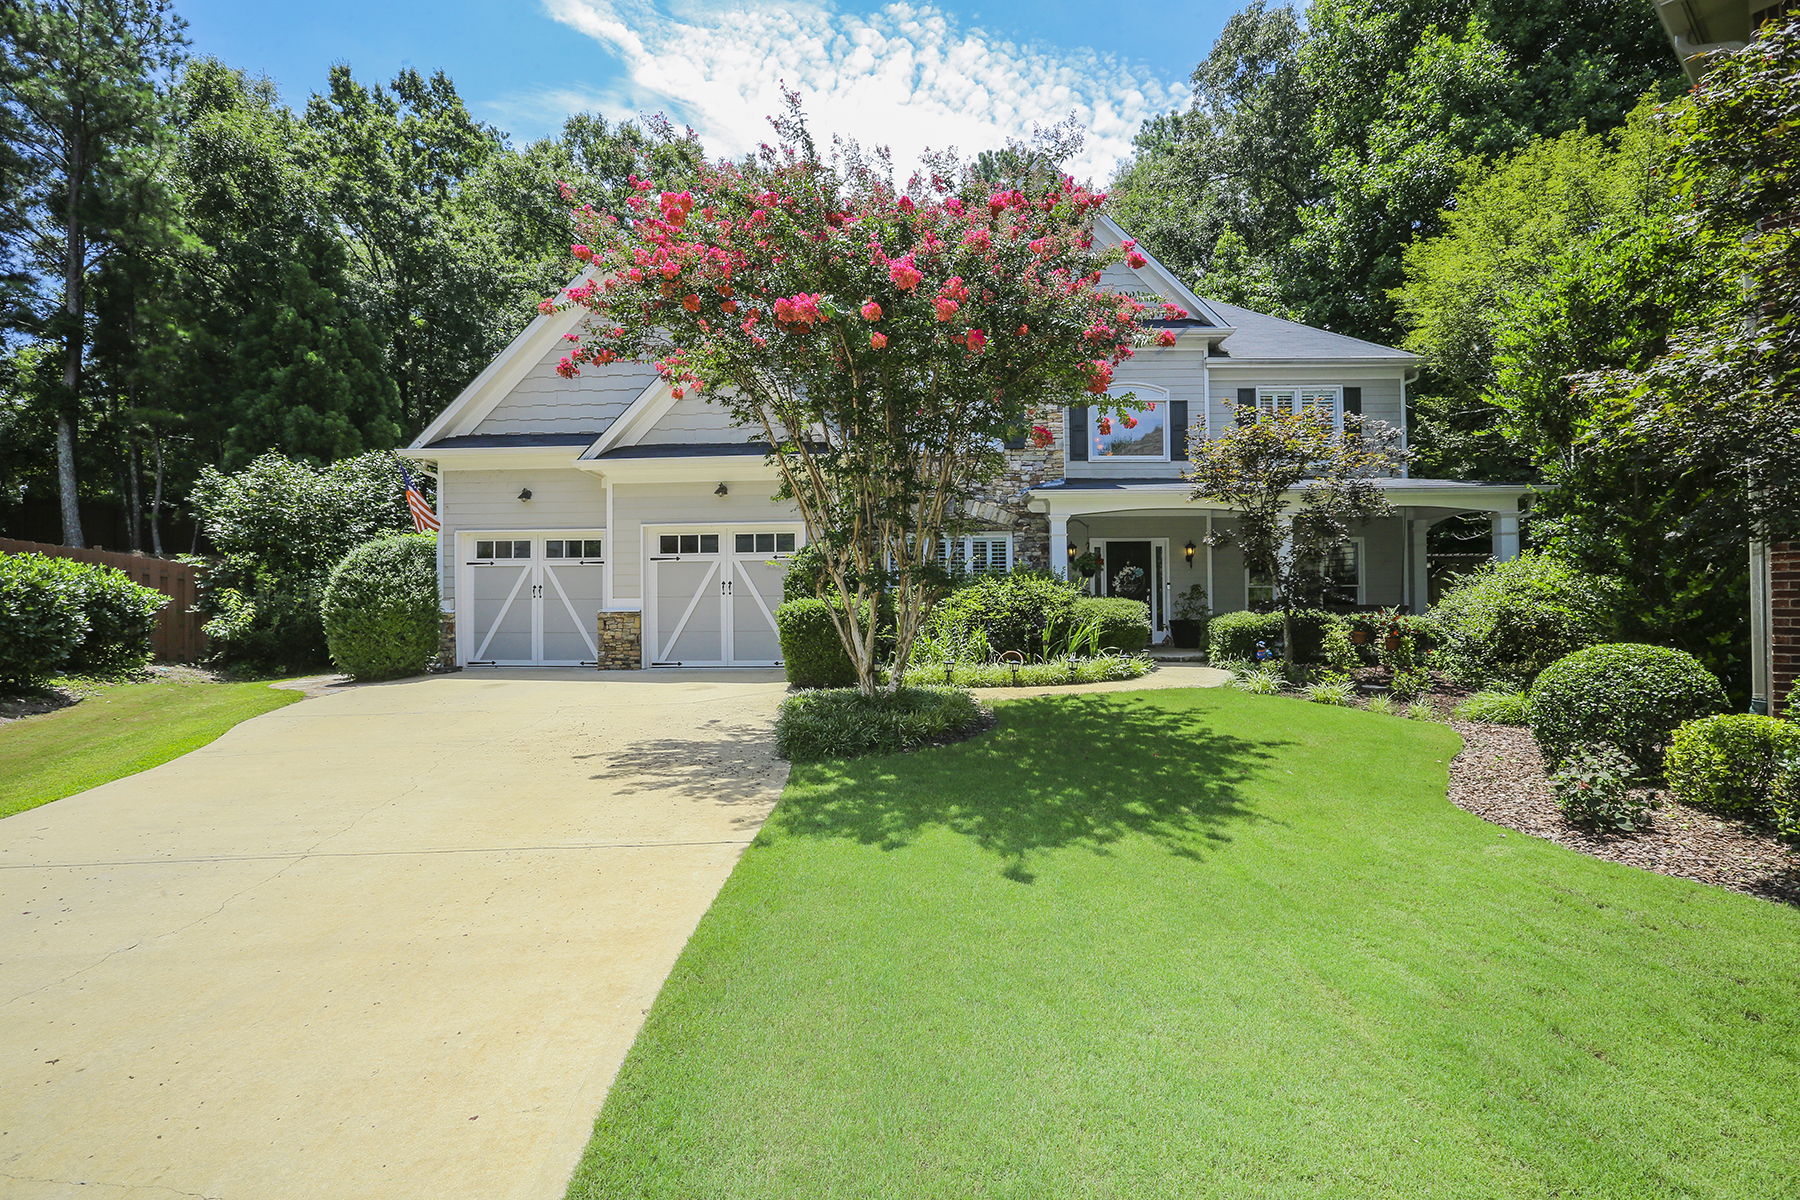 Single Family Home for Sale at City Of Norcross Gem 6030 Georgetown Park Drive Norcross, Georgia 30071 United States